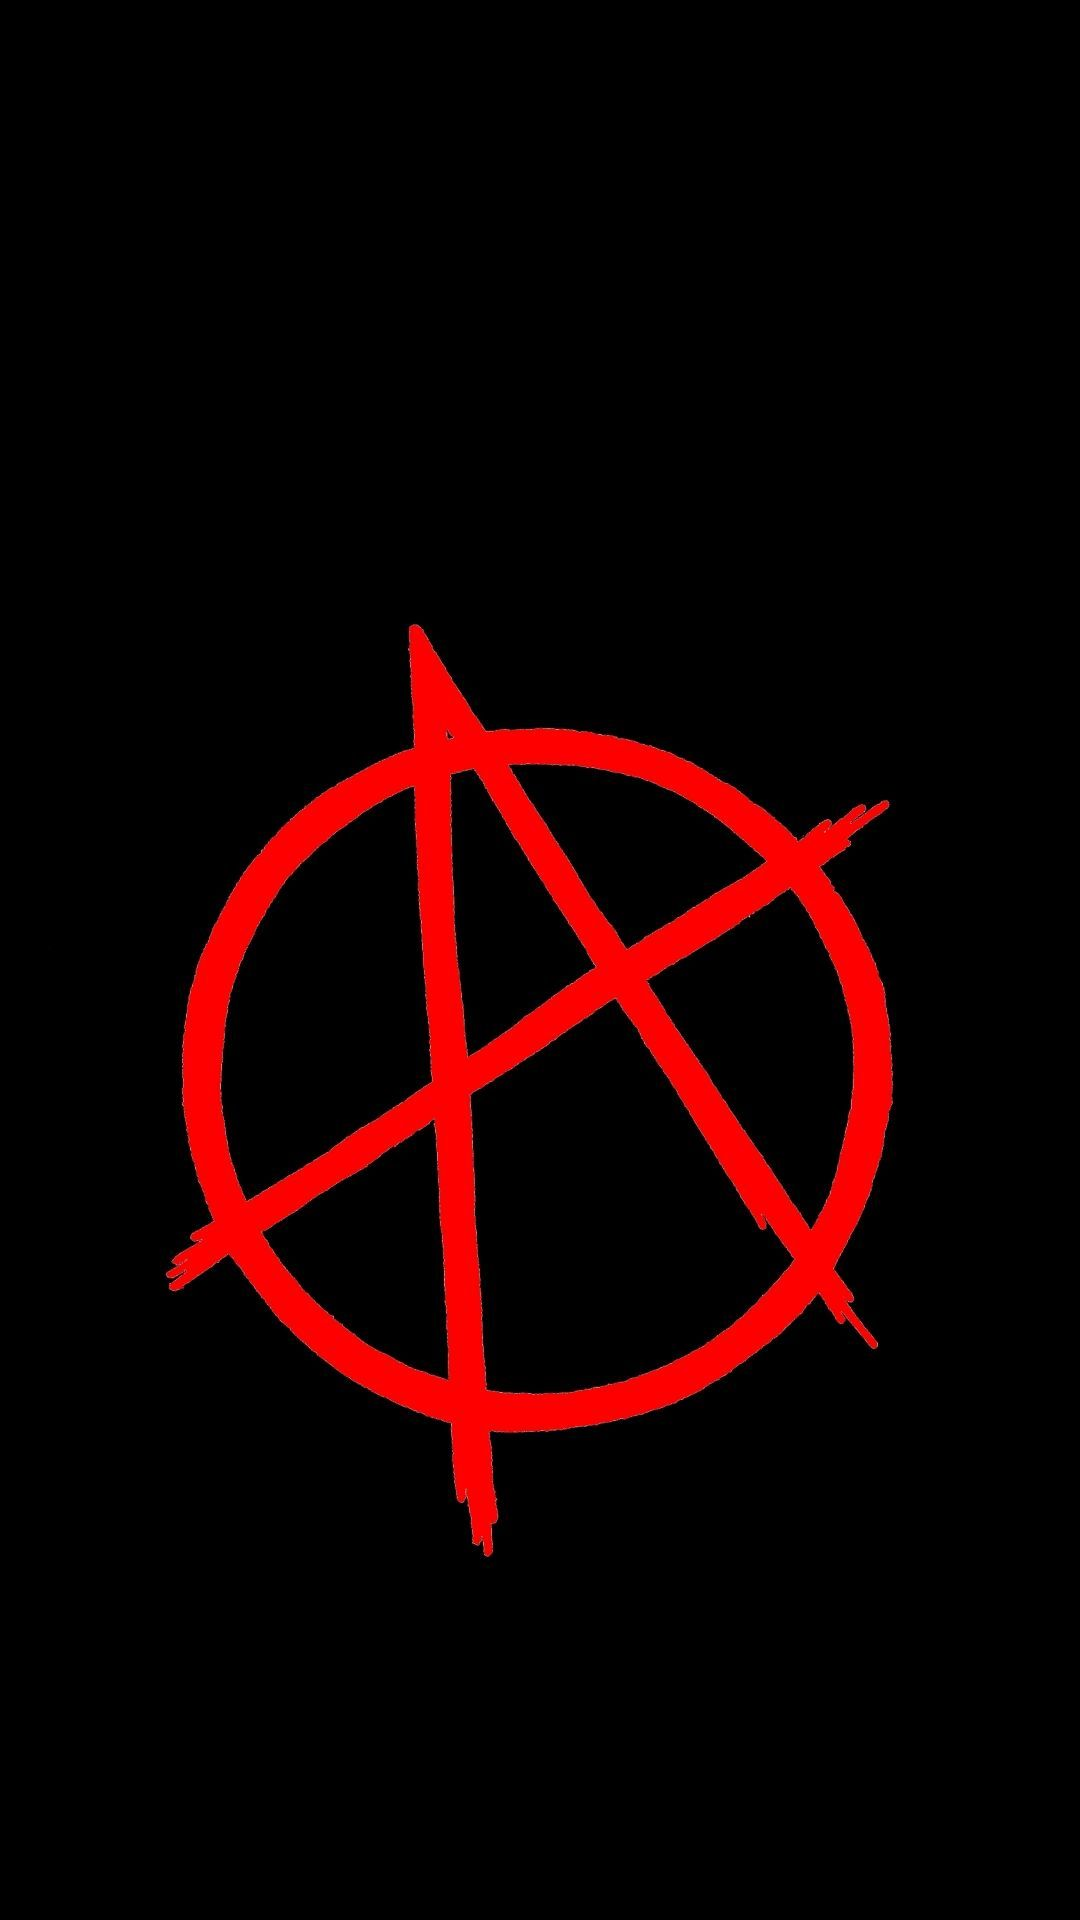 Anarchy Wallpapers Top Free Anarchy Backgrounds Wallpaperaccess Lil Peep Tattoos Anarchy Anarchy Symbol